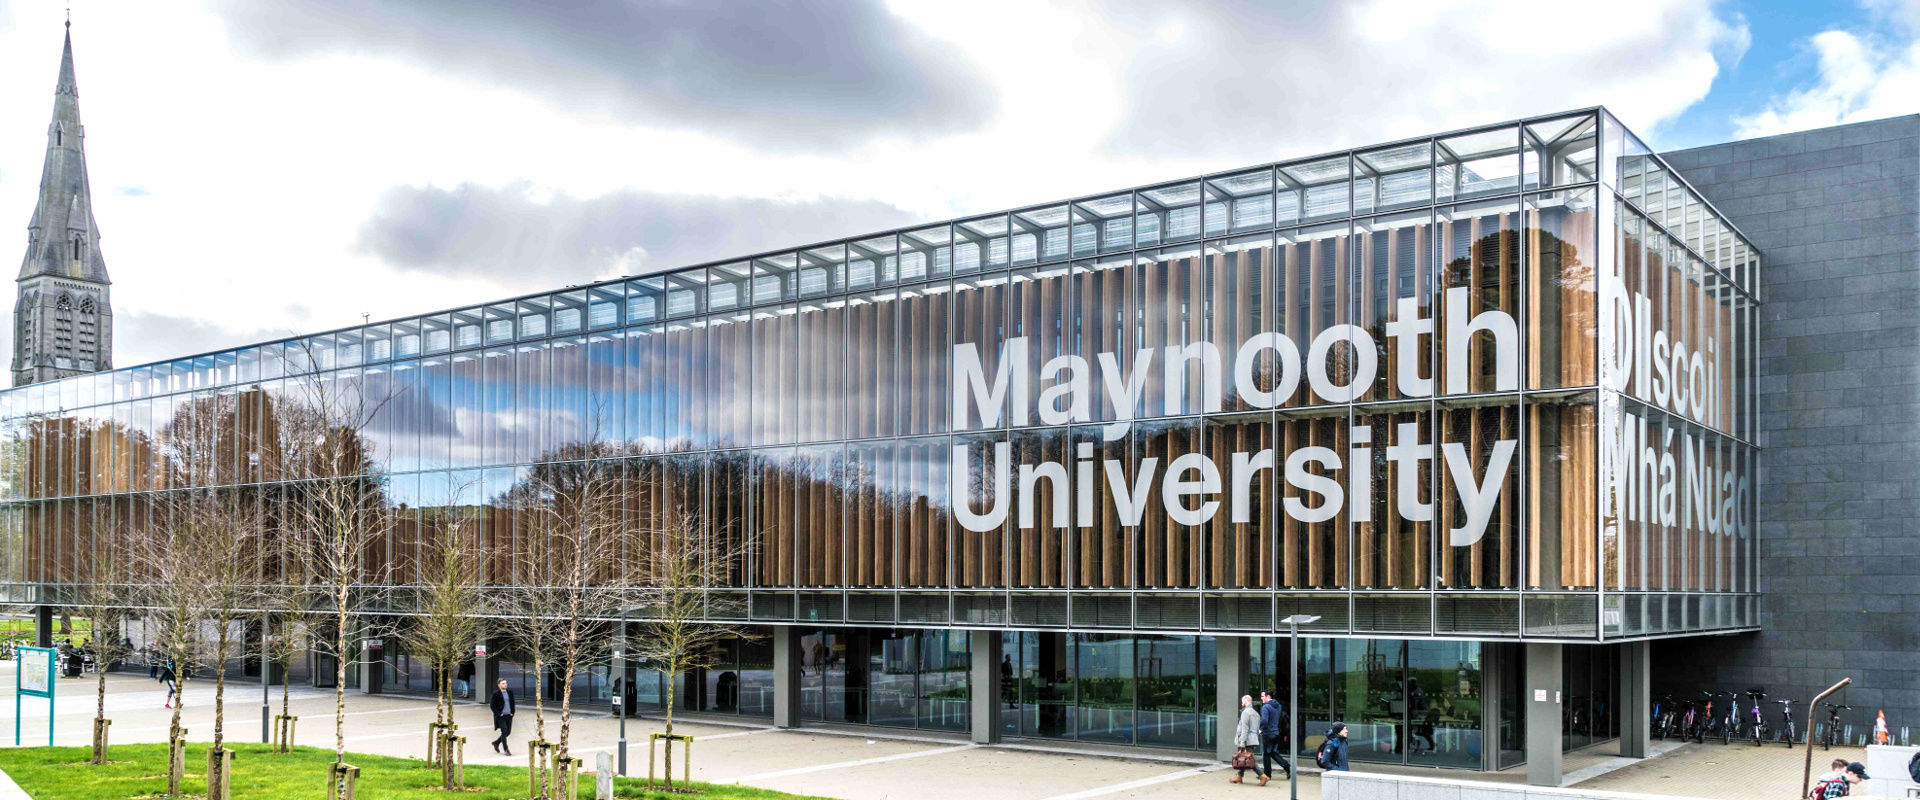 Maynooth University Library